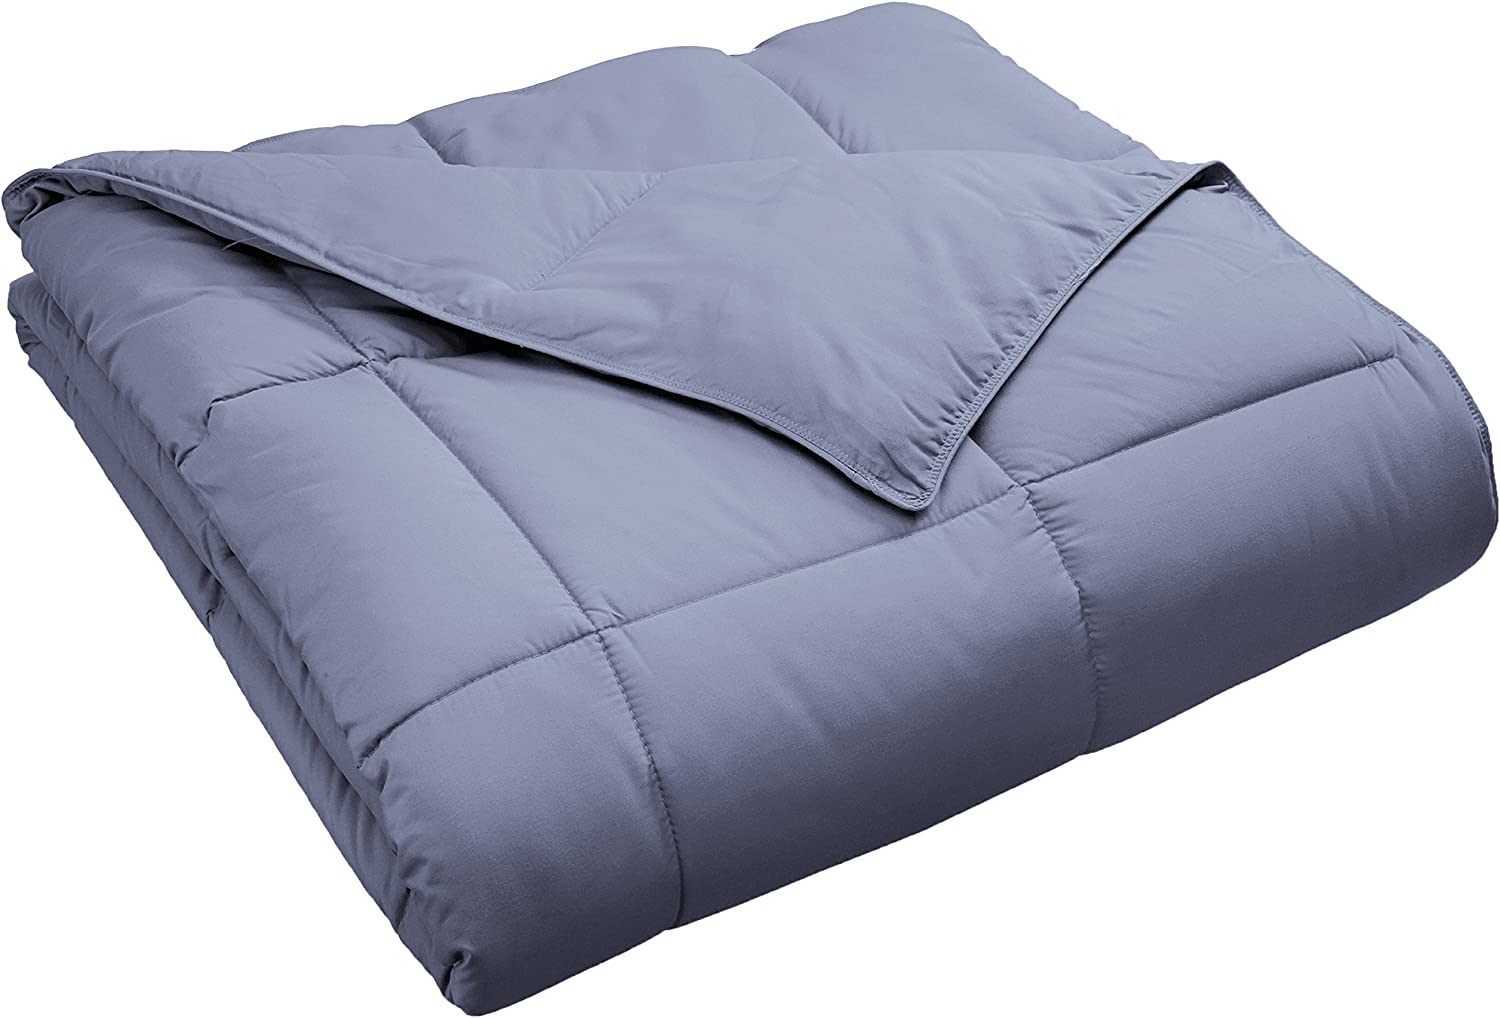 Superior Classic All-Season Down Alternative Comforter with with Baffle Box Construction, King, Silver